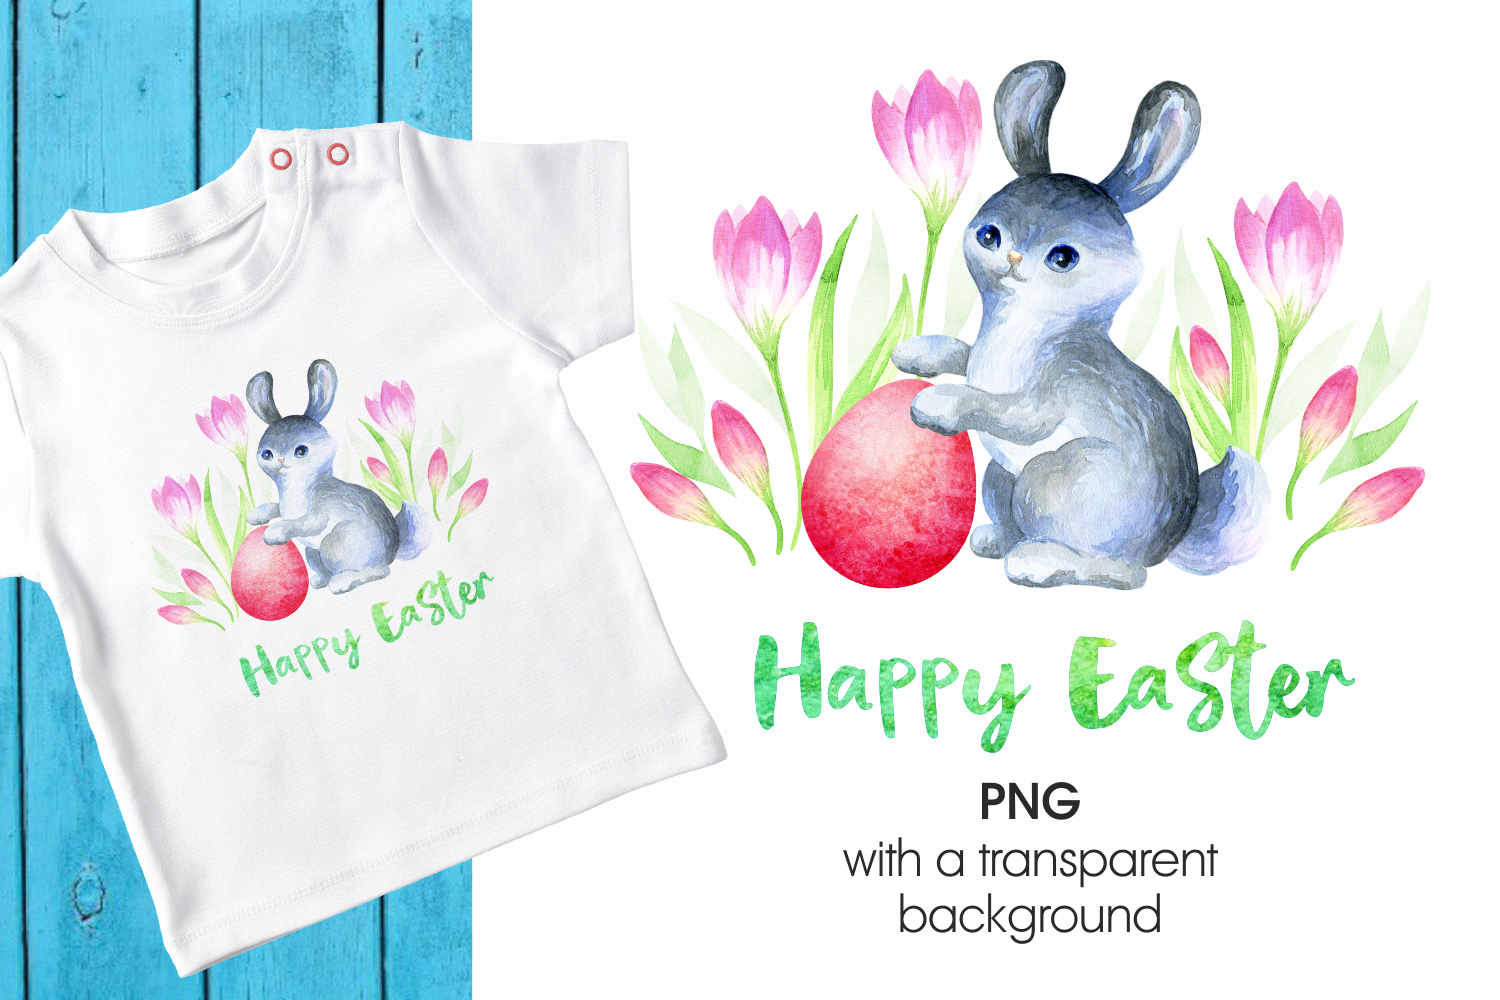 Download Free Cute Easter Bunny Graphic By Olga Belova Creative Fabrica for Cricut Explore, Silhouette and other cutting machines.